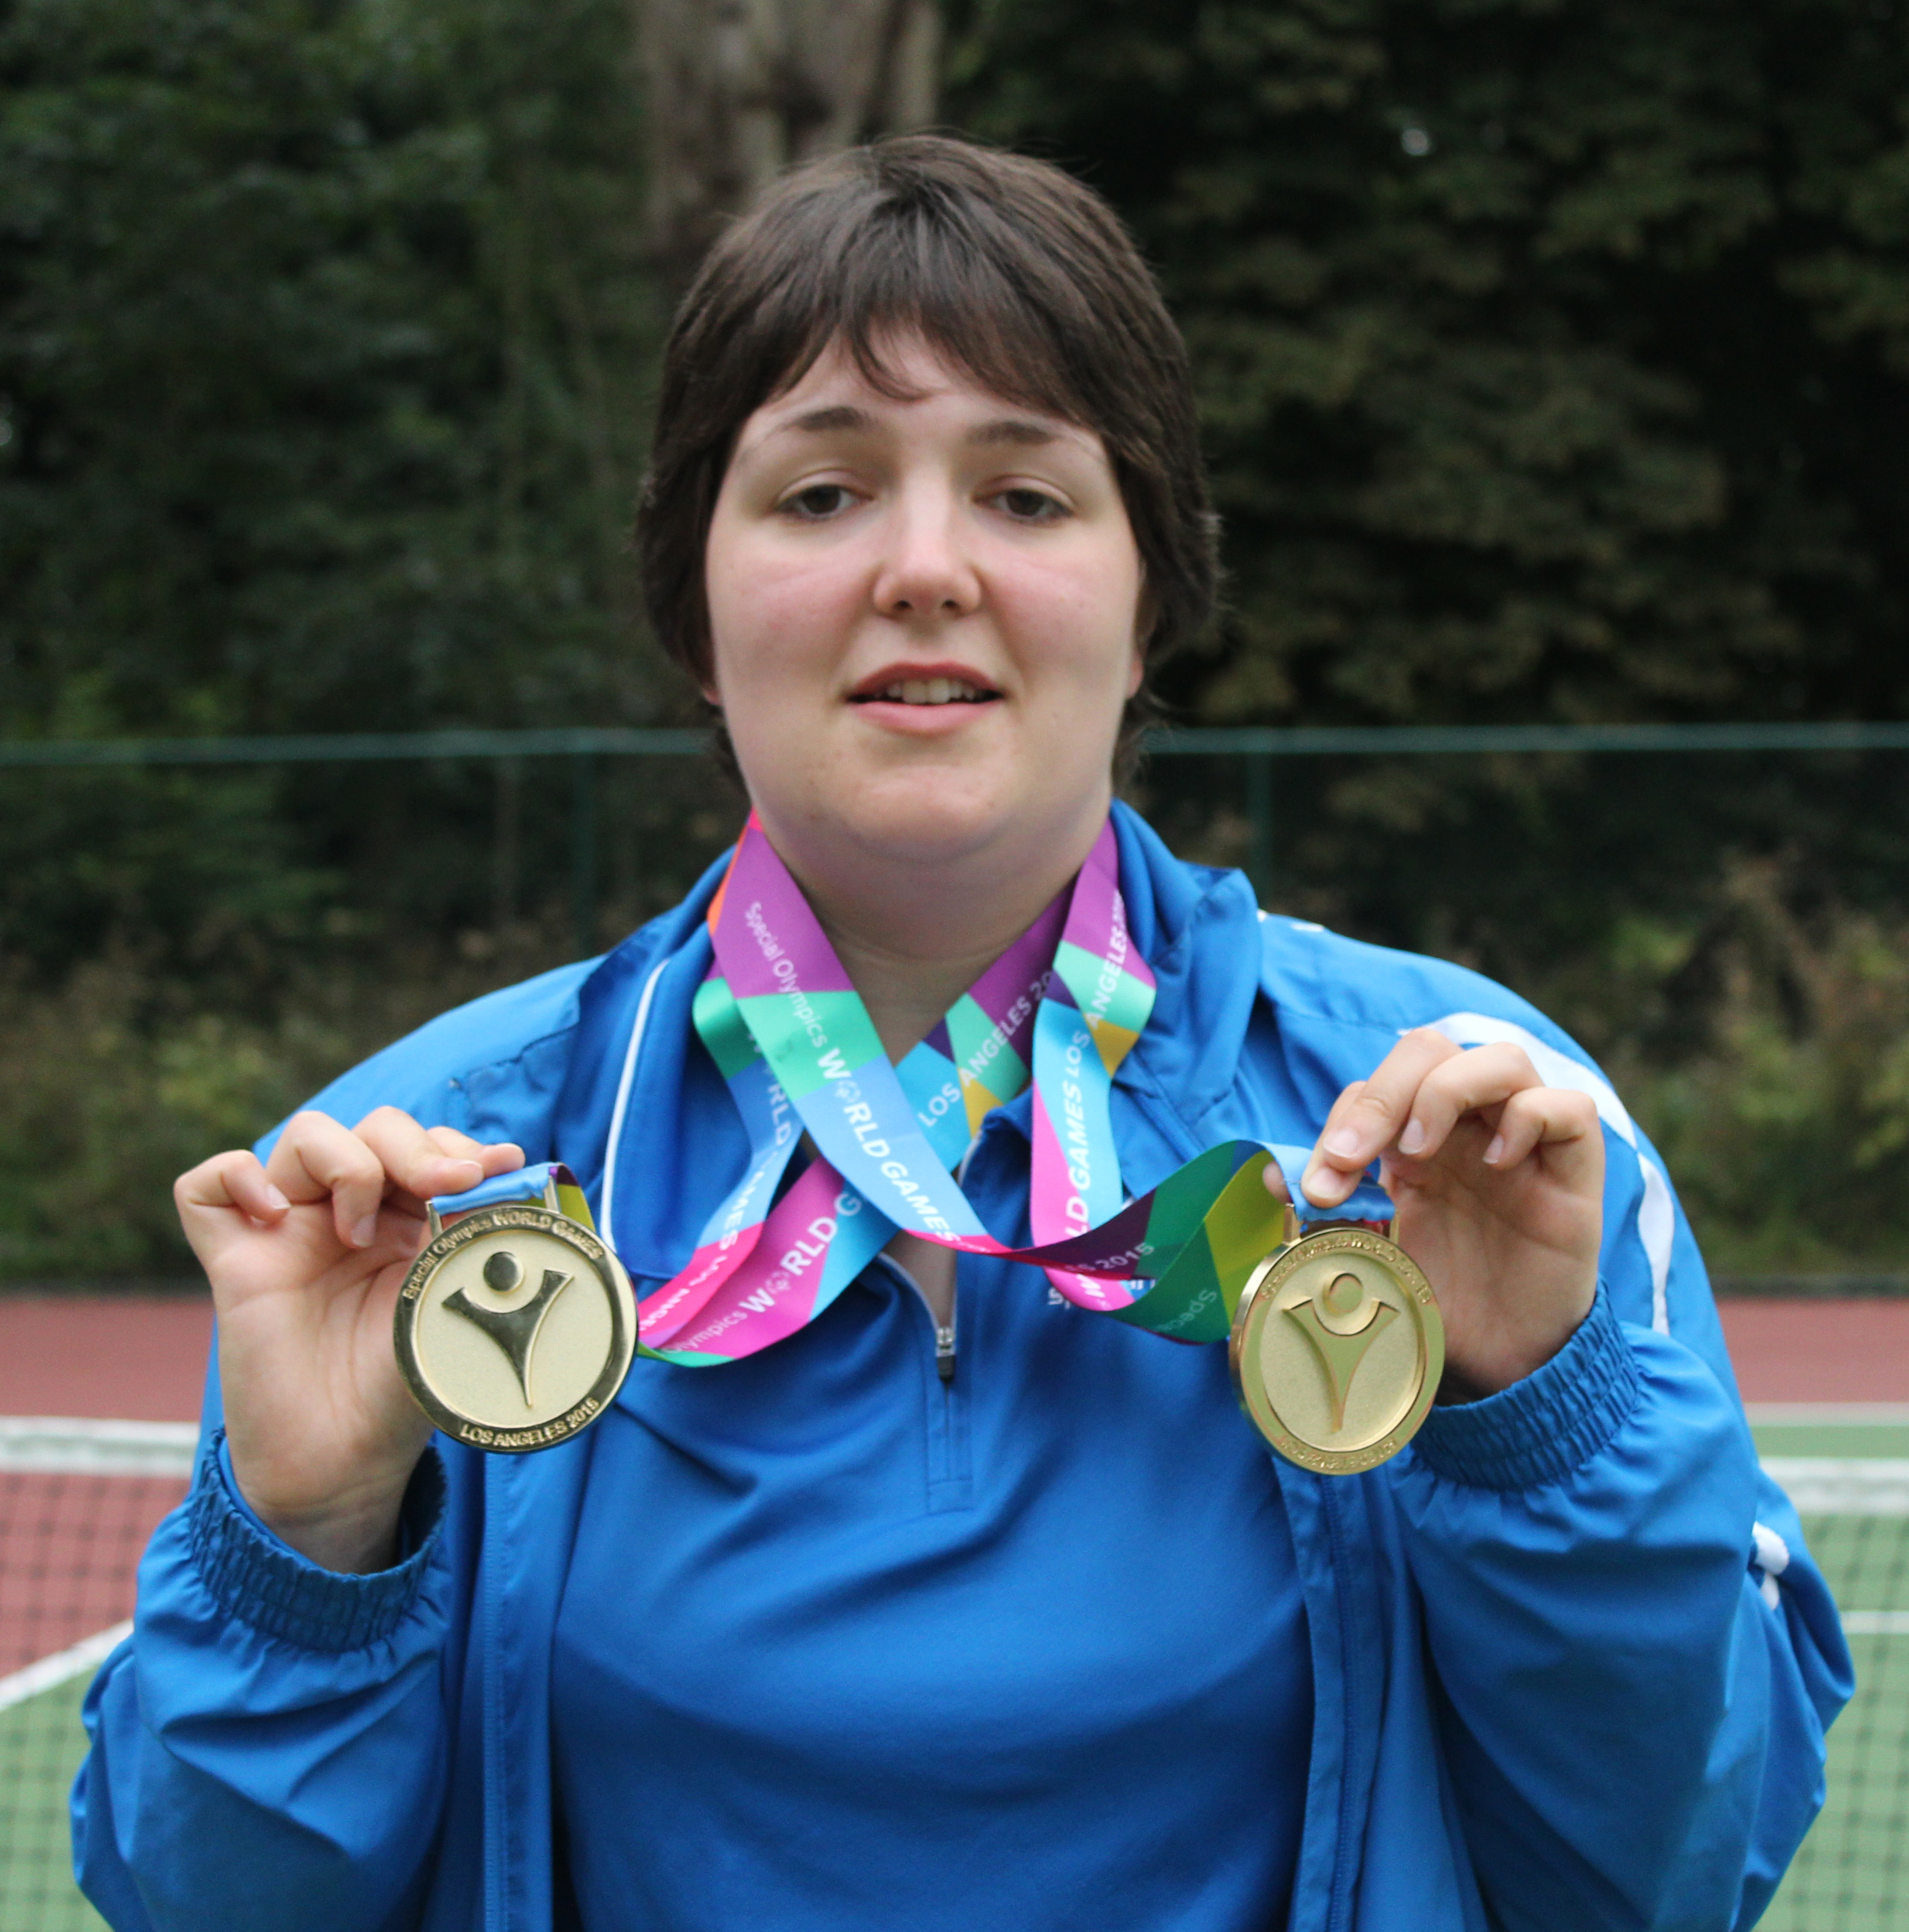 Laura Campbell with her two Gold medals from the Los Angeles World Games 2015